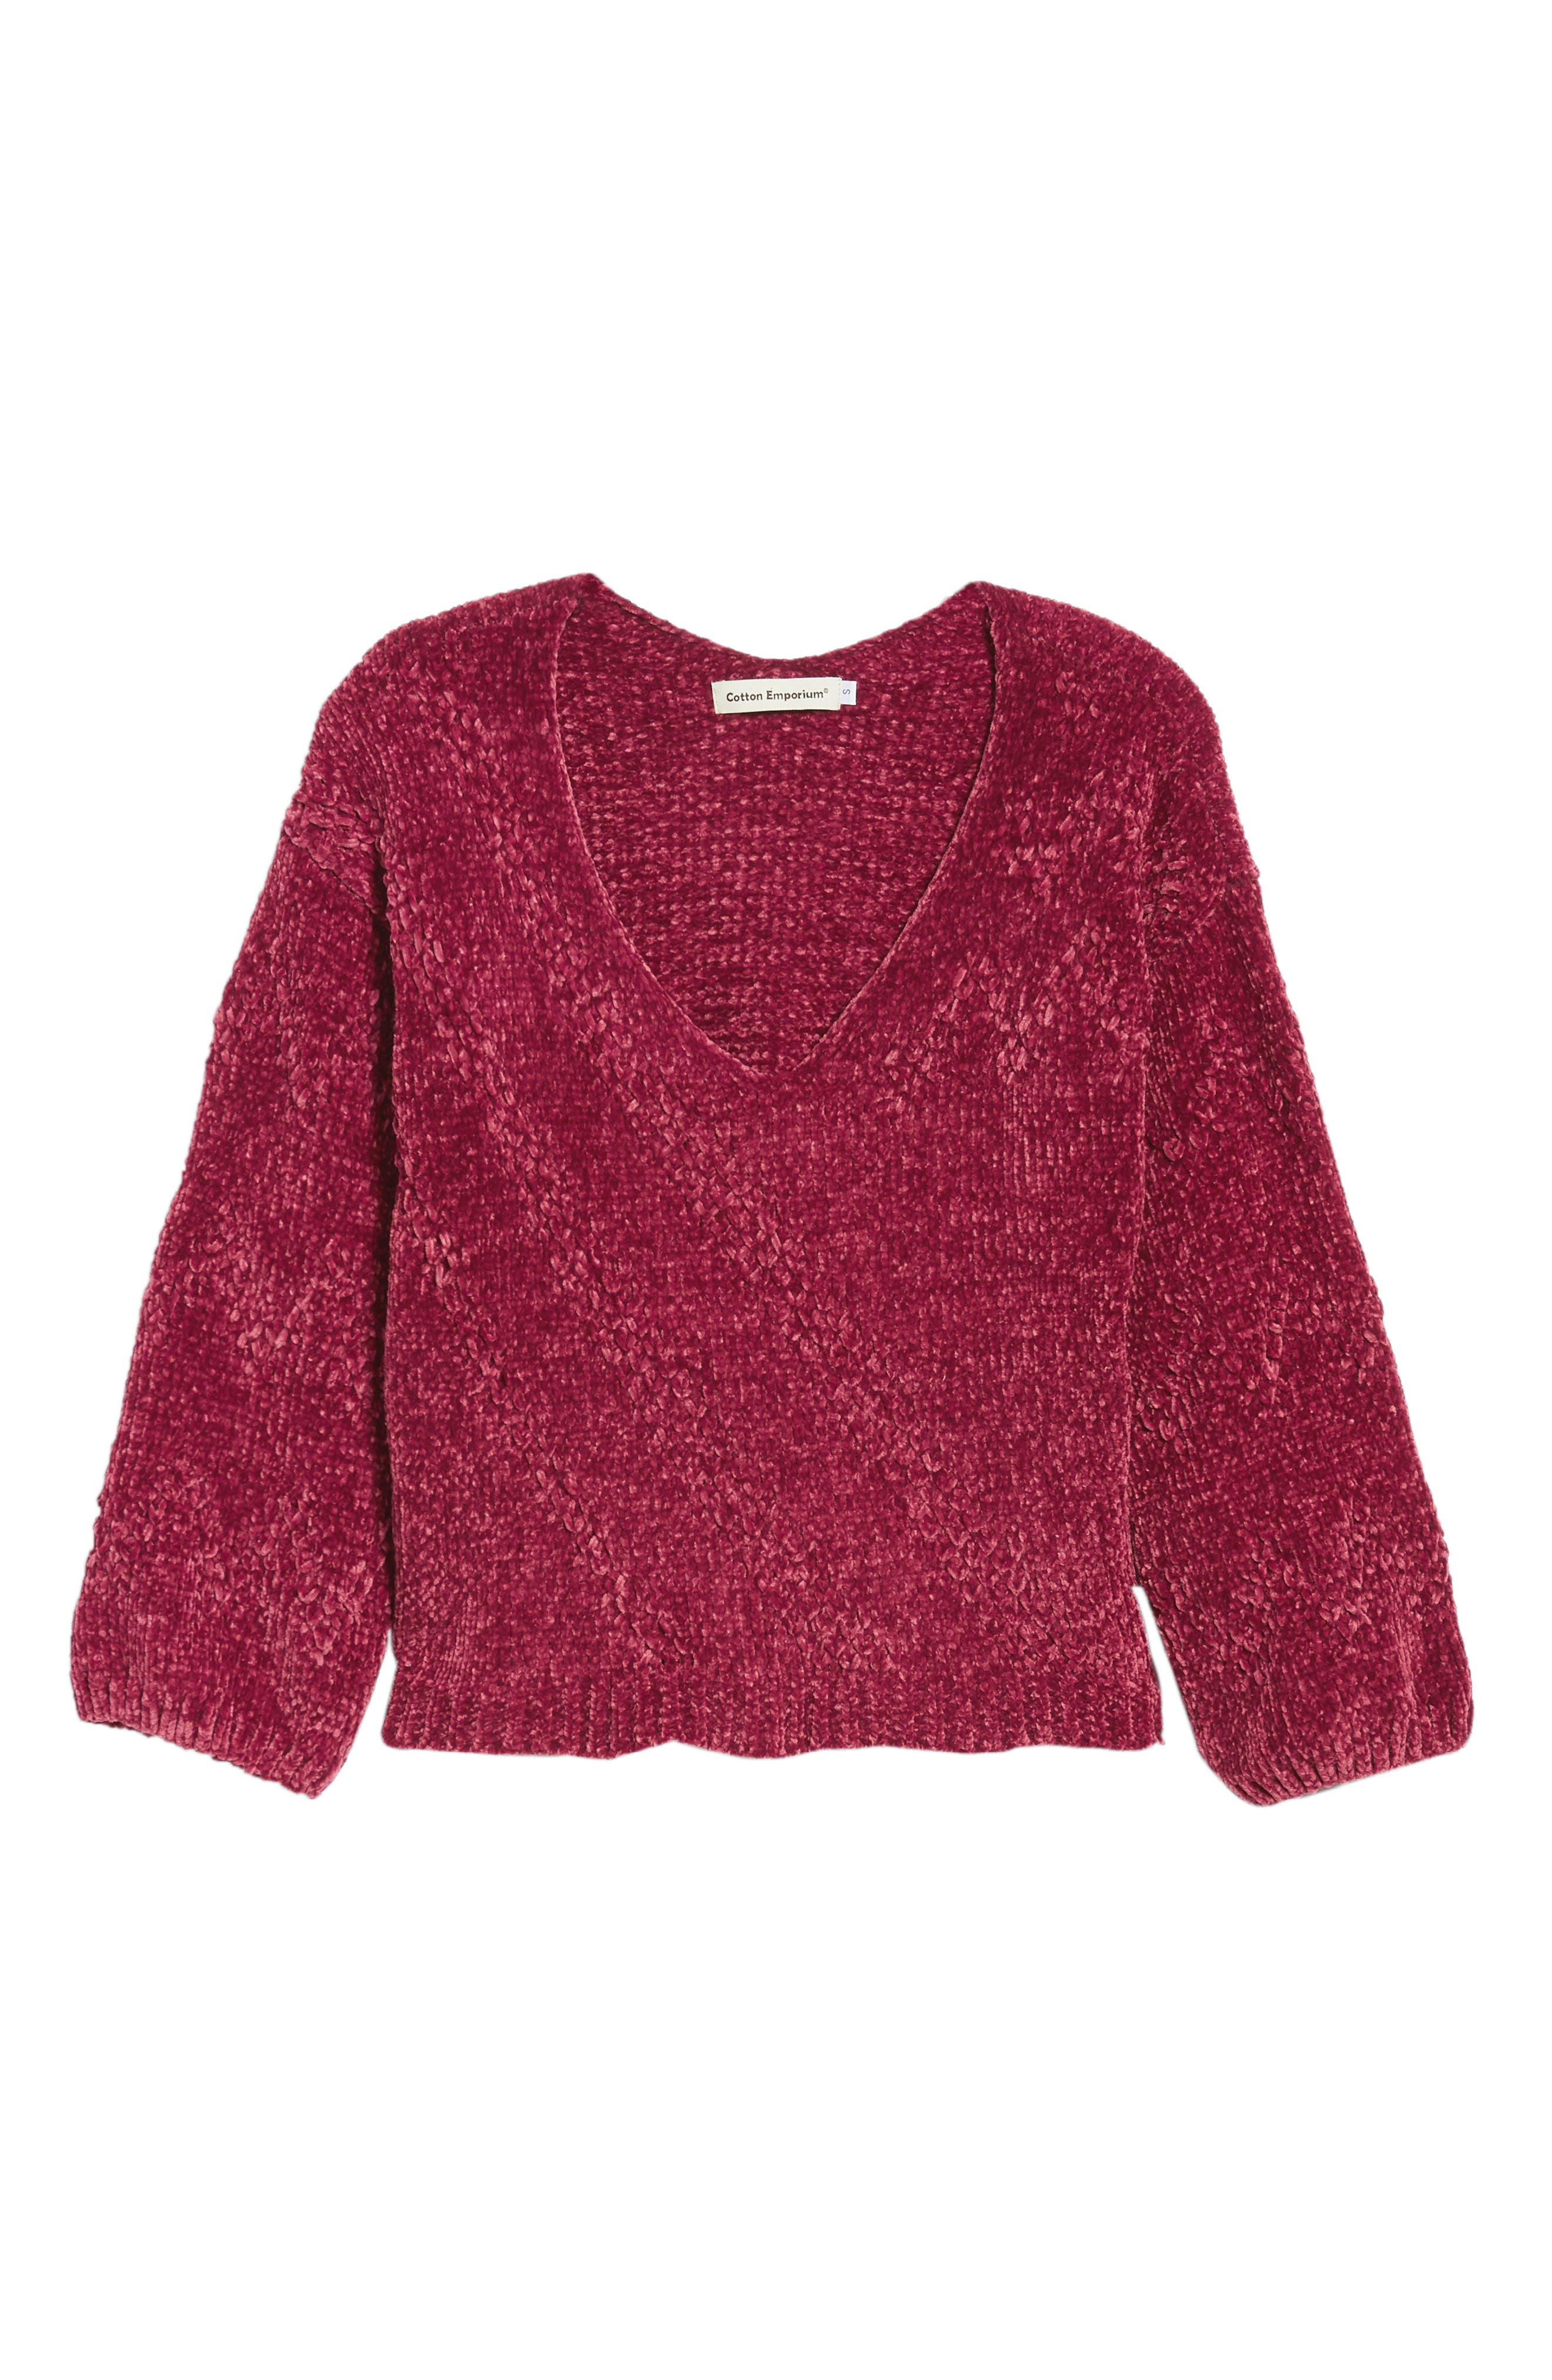 Chenille Plunging Sweater,                             Alternate thumbnail 6, color,                             500